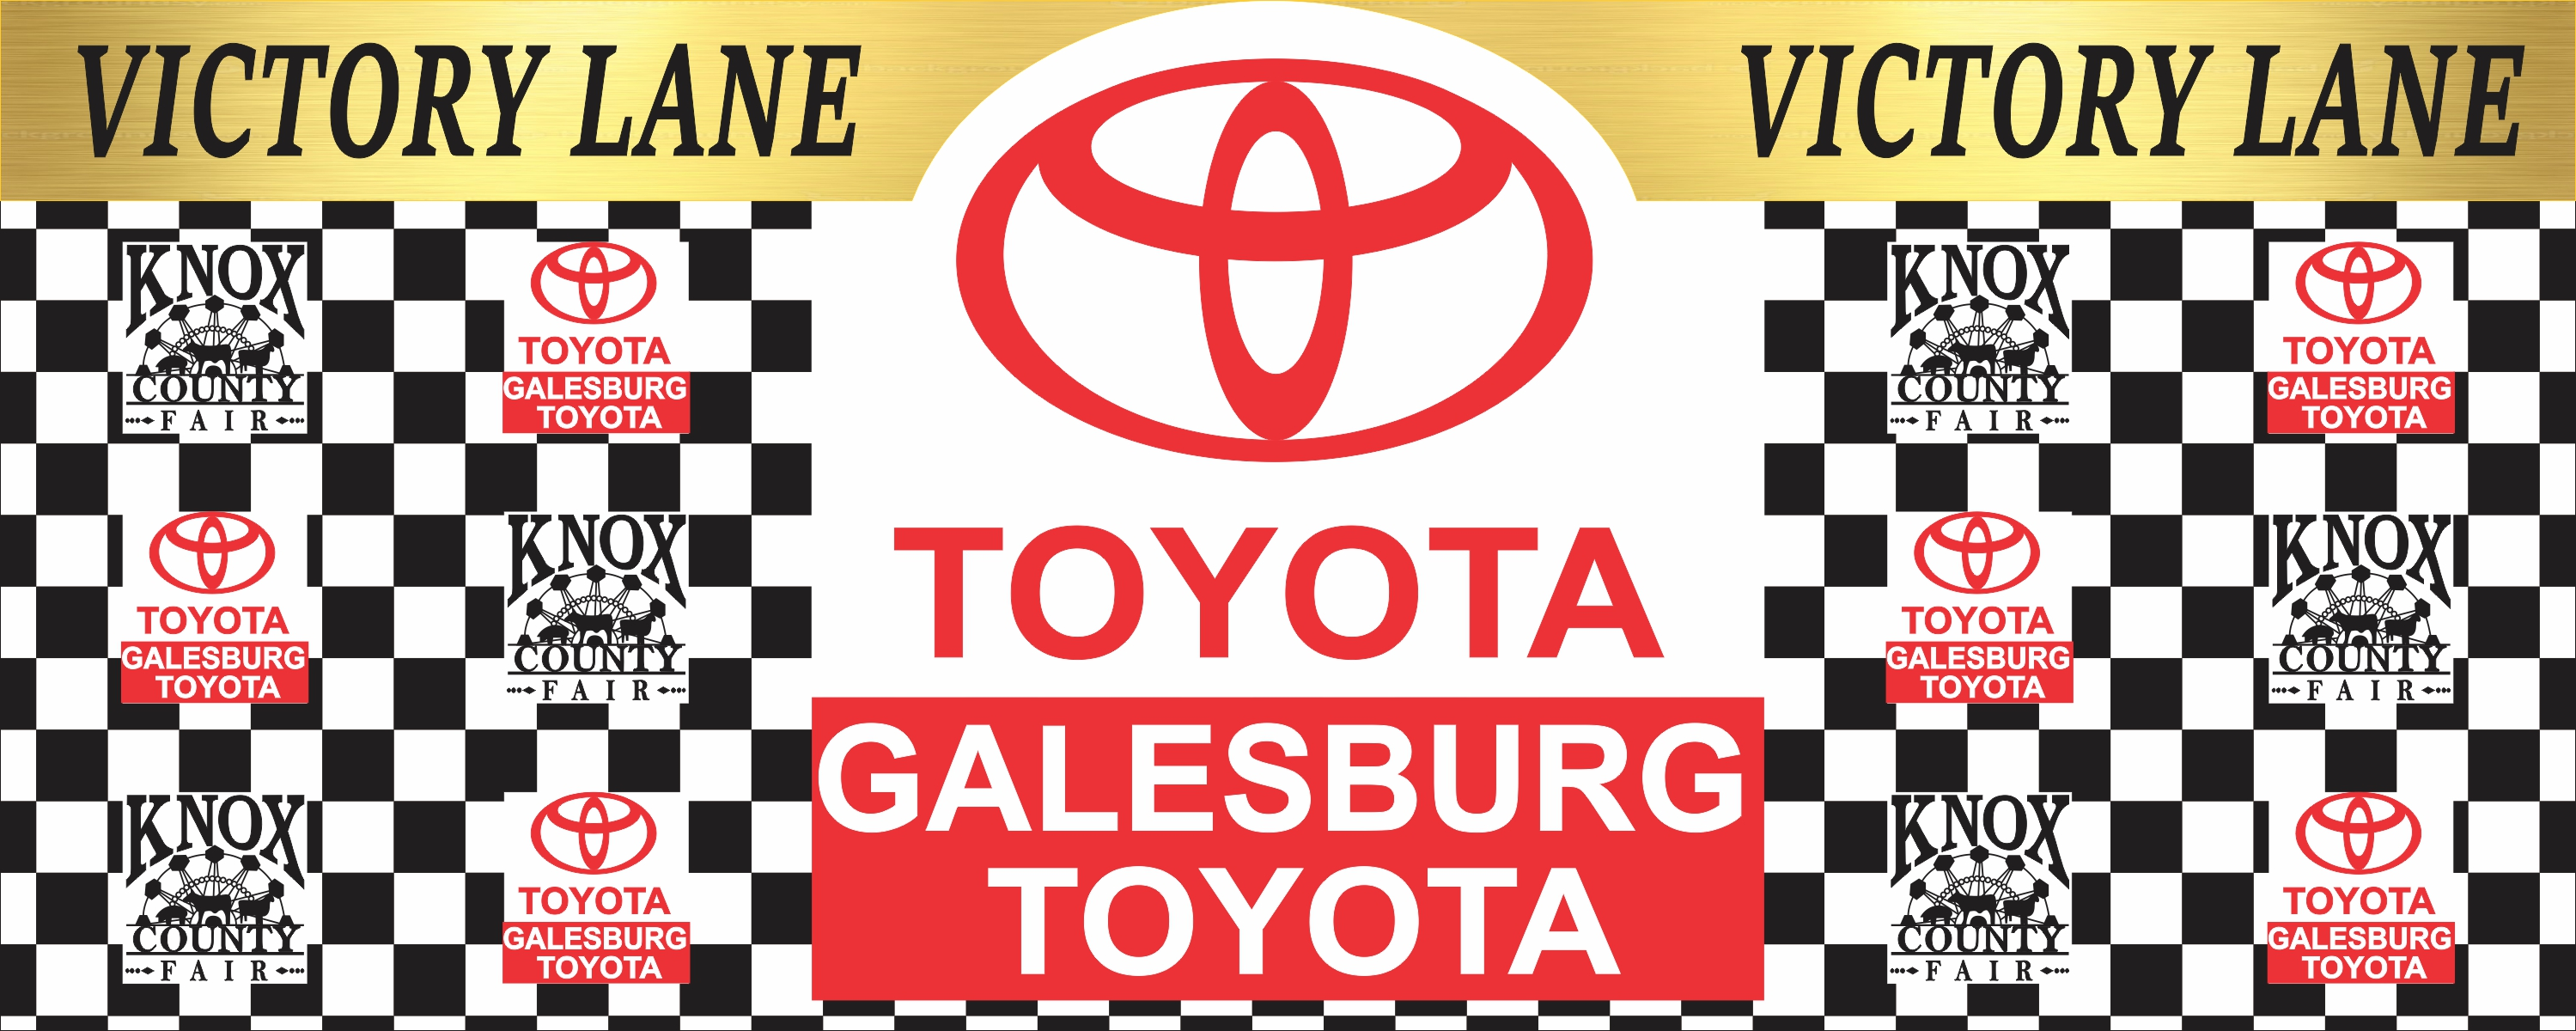 15x6fT Toyota Victory Lane Banner 1